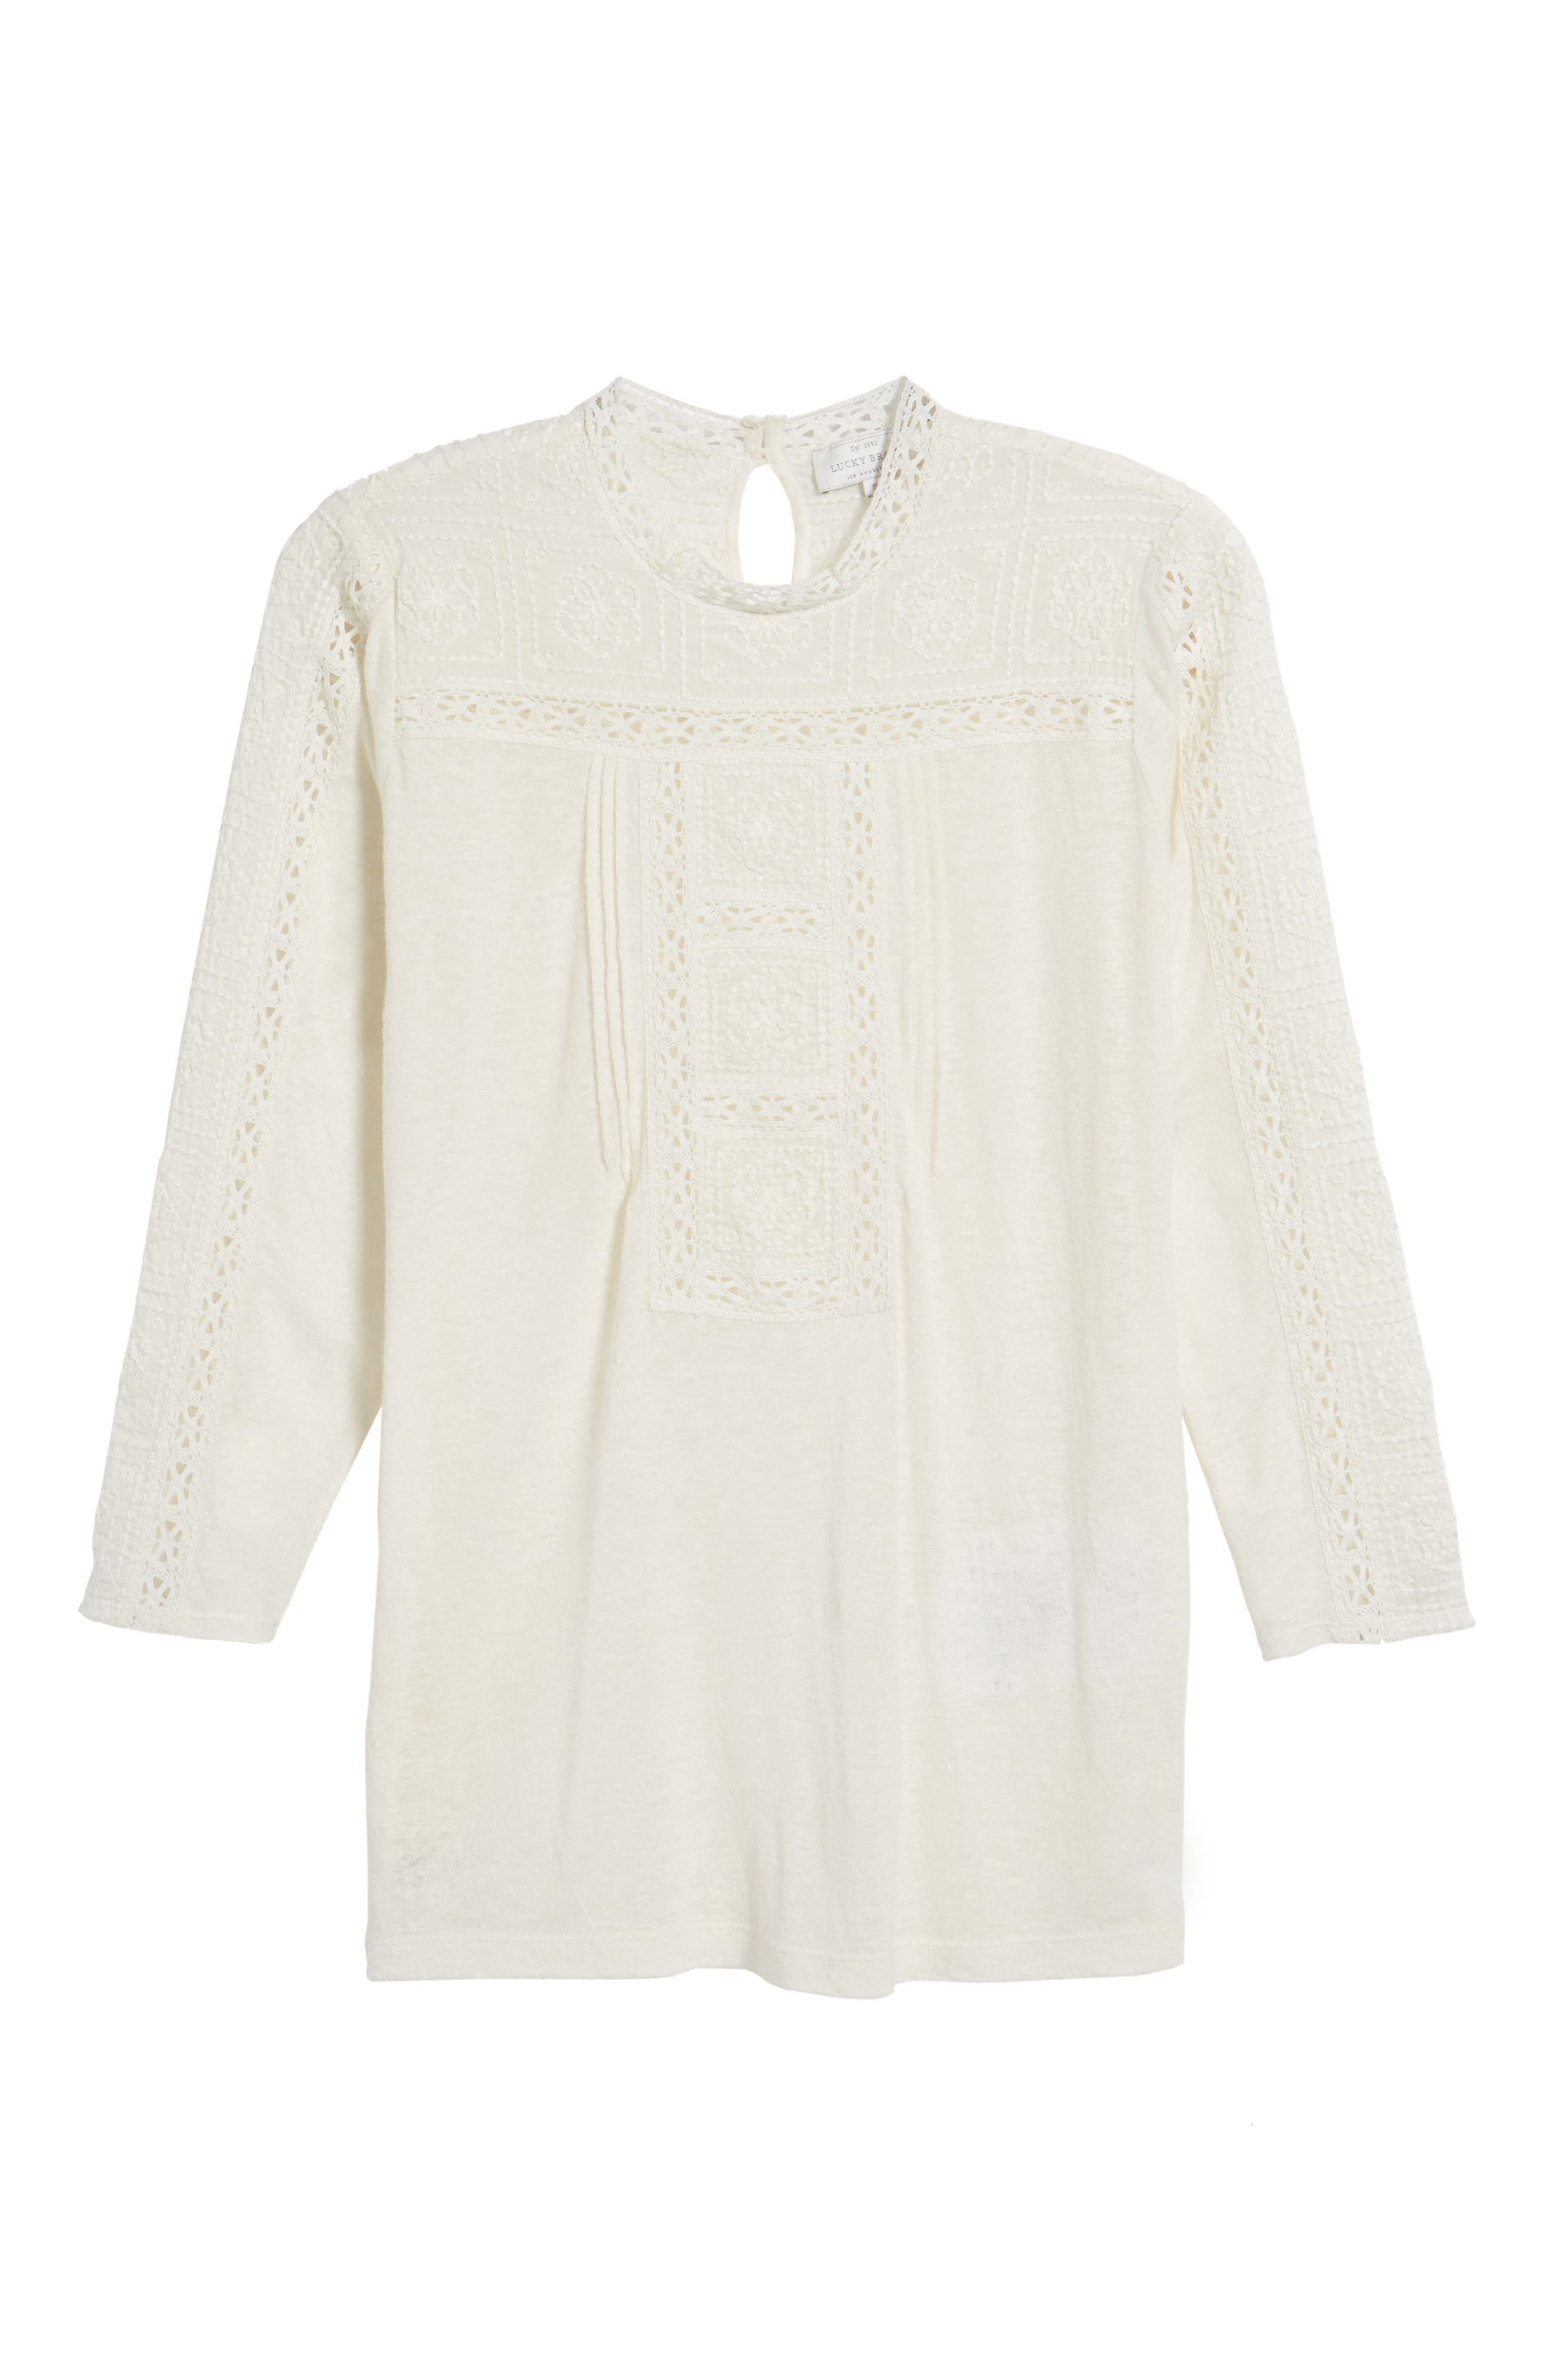 Embroidered Eyelet Trim Top,                             Alternate thumbnail 6, color,                             900